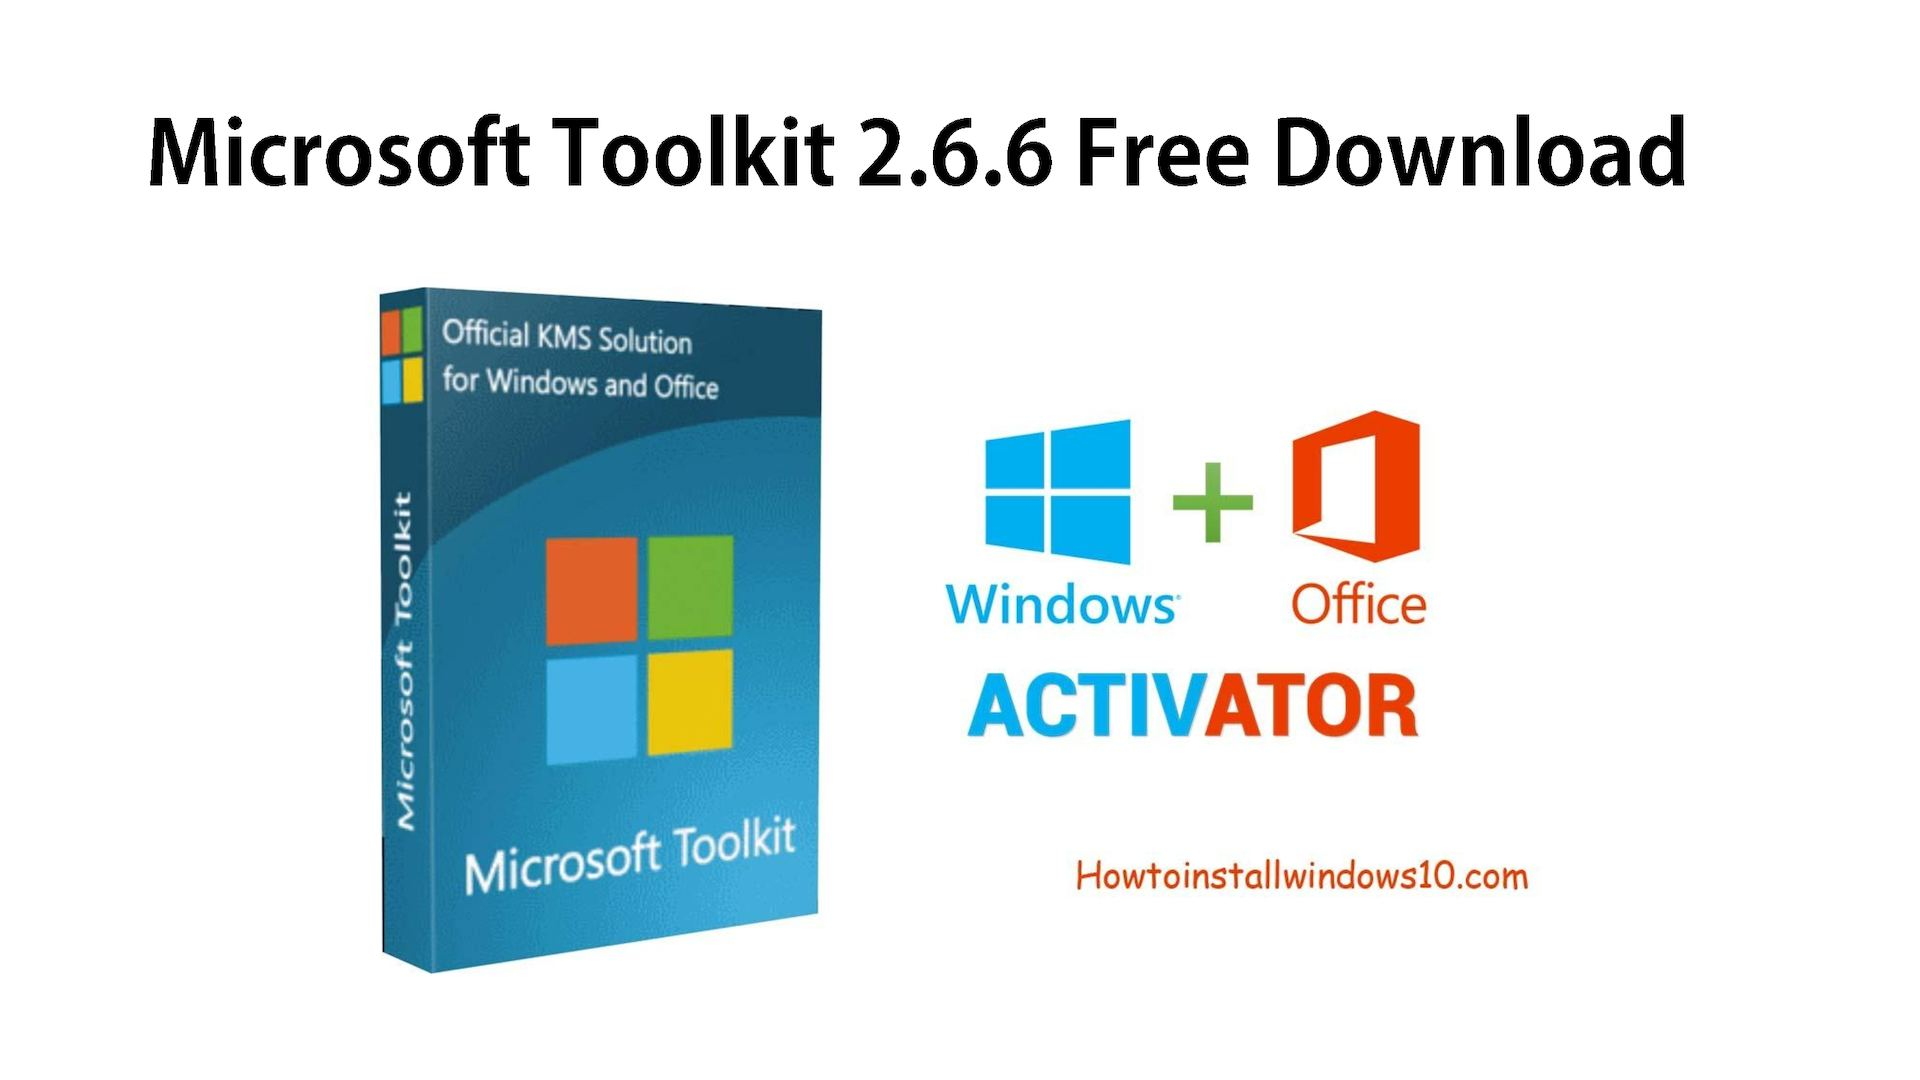 download office 2010 toolkit 2.2 3